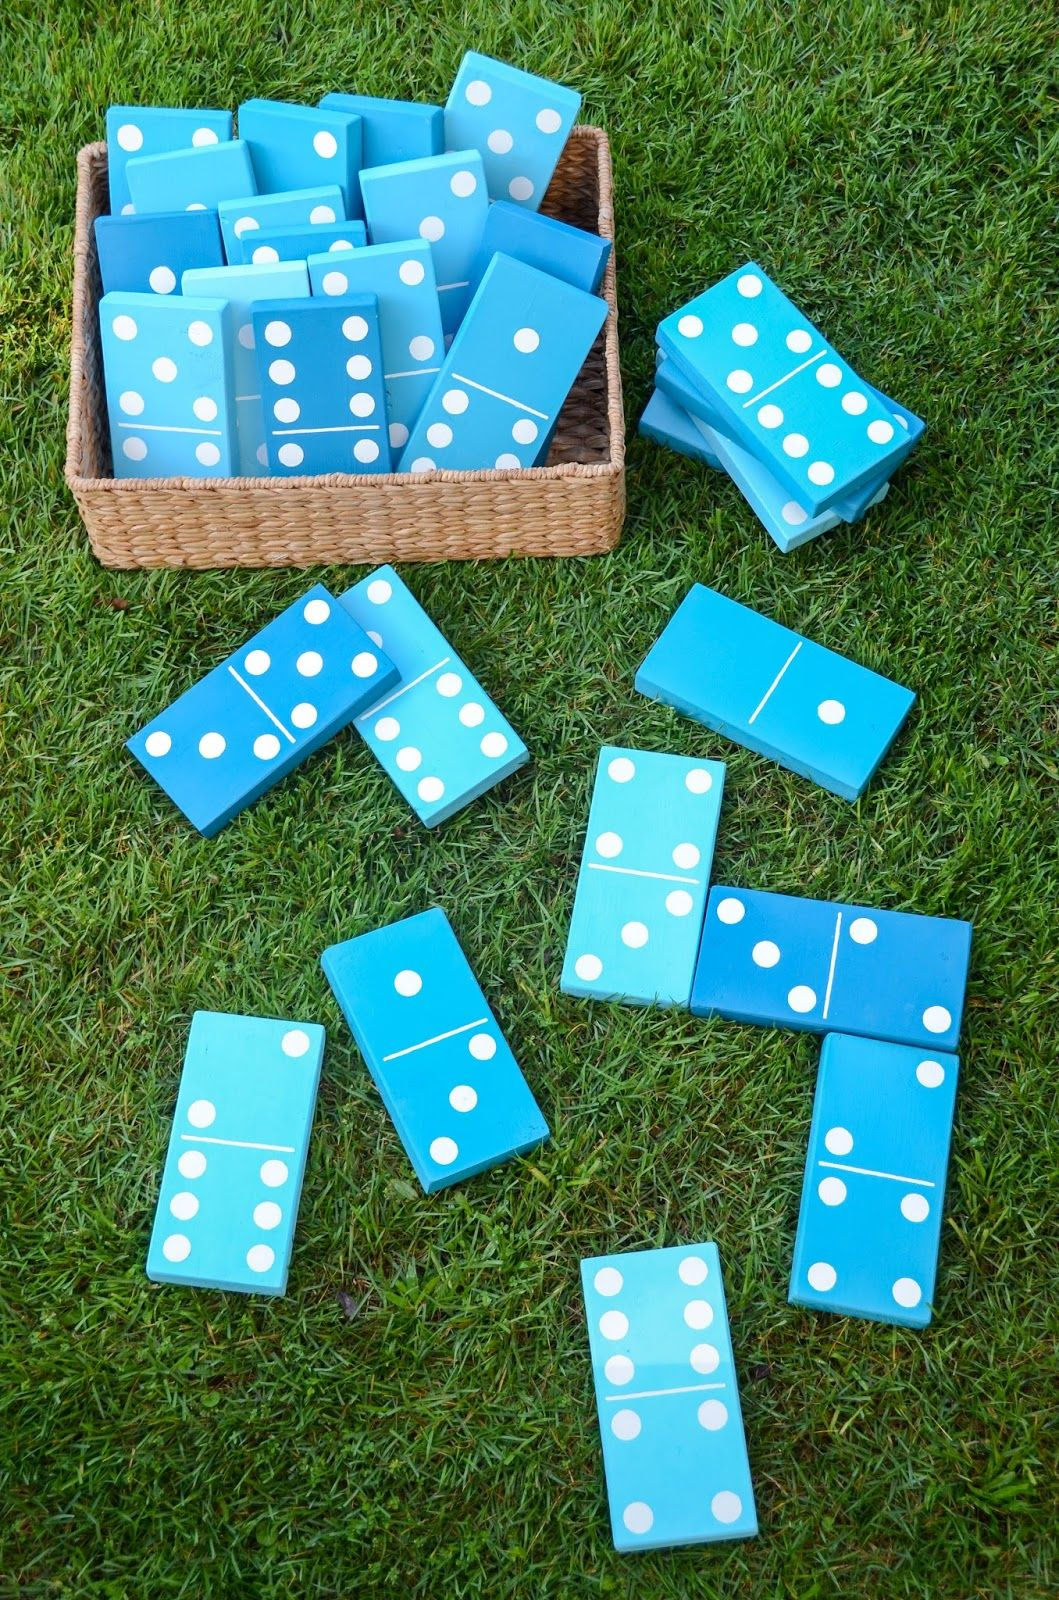 Juegos Tradicionales Al Aire Libre Diy Lawn Dominoes Backyardbbq Via Ironandtwine Patio Ideas